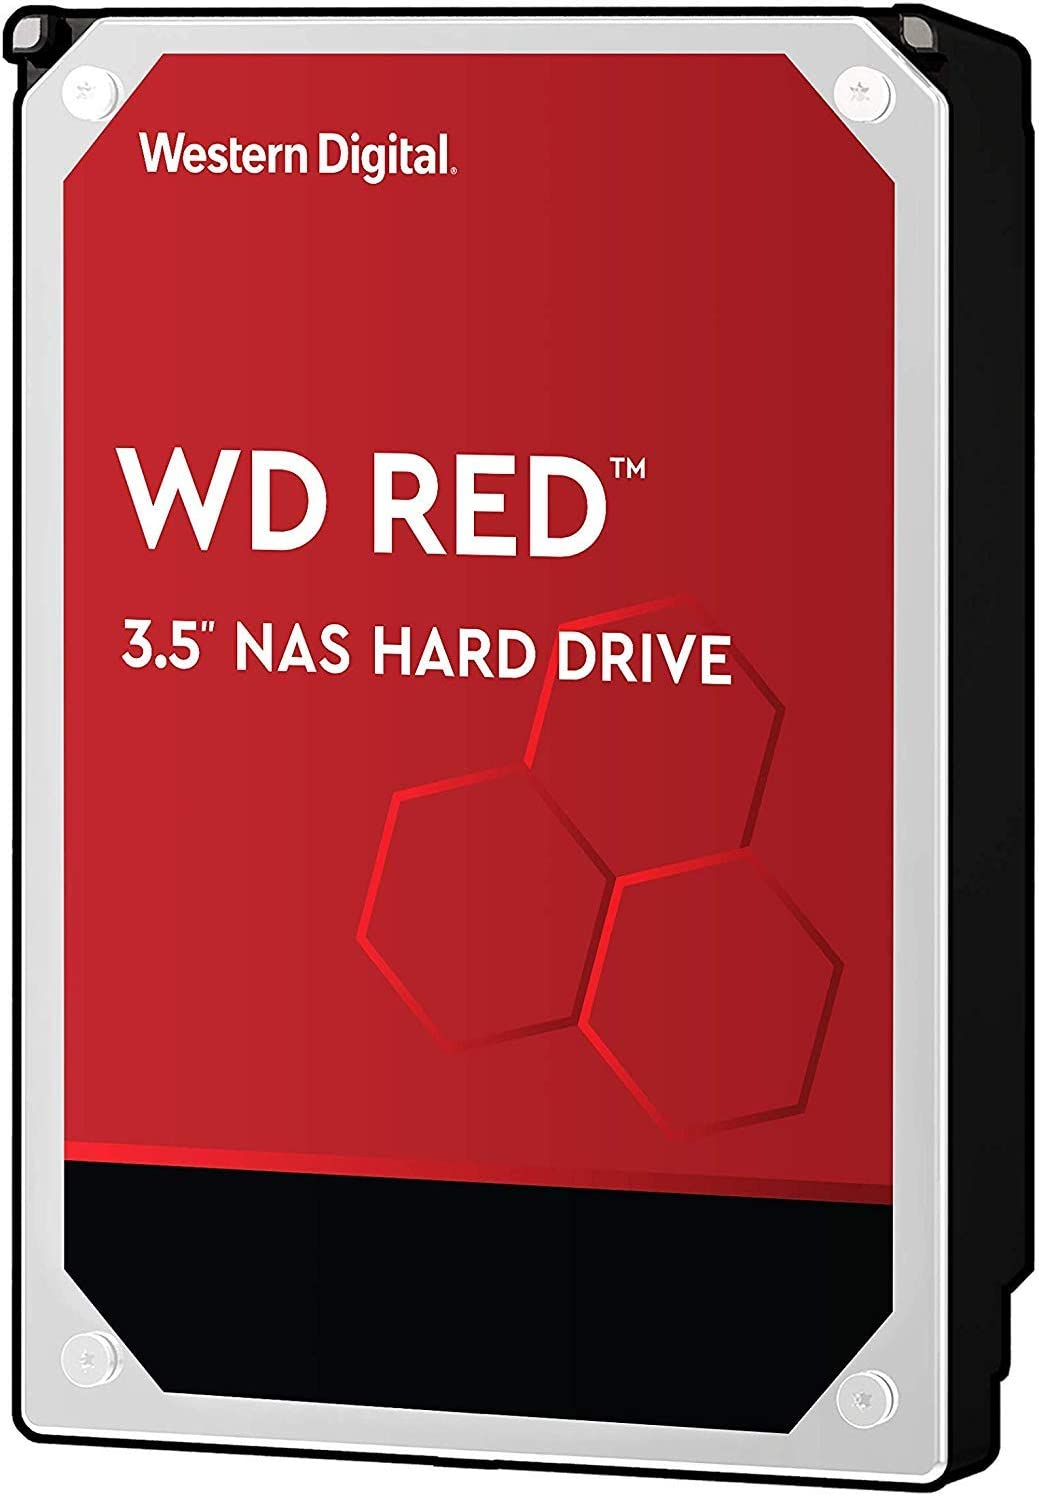 WD Red 2TB NAS Internal Hard Drive - 5400 RPM Class, SATA 6 Gb/s, SMR, 256MB Cache, 3.5